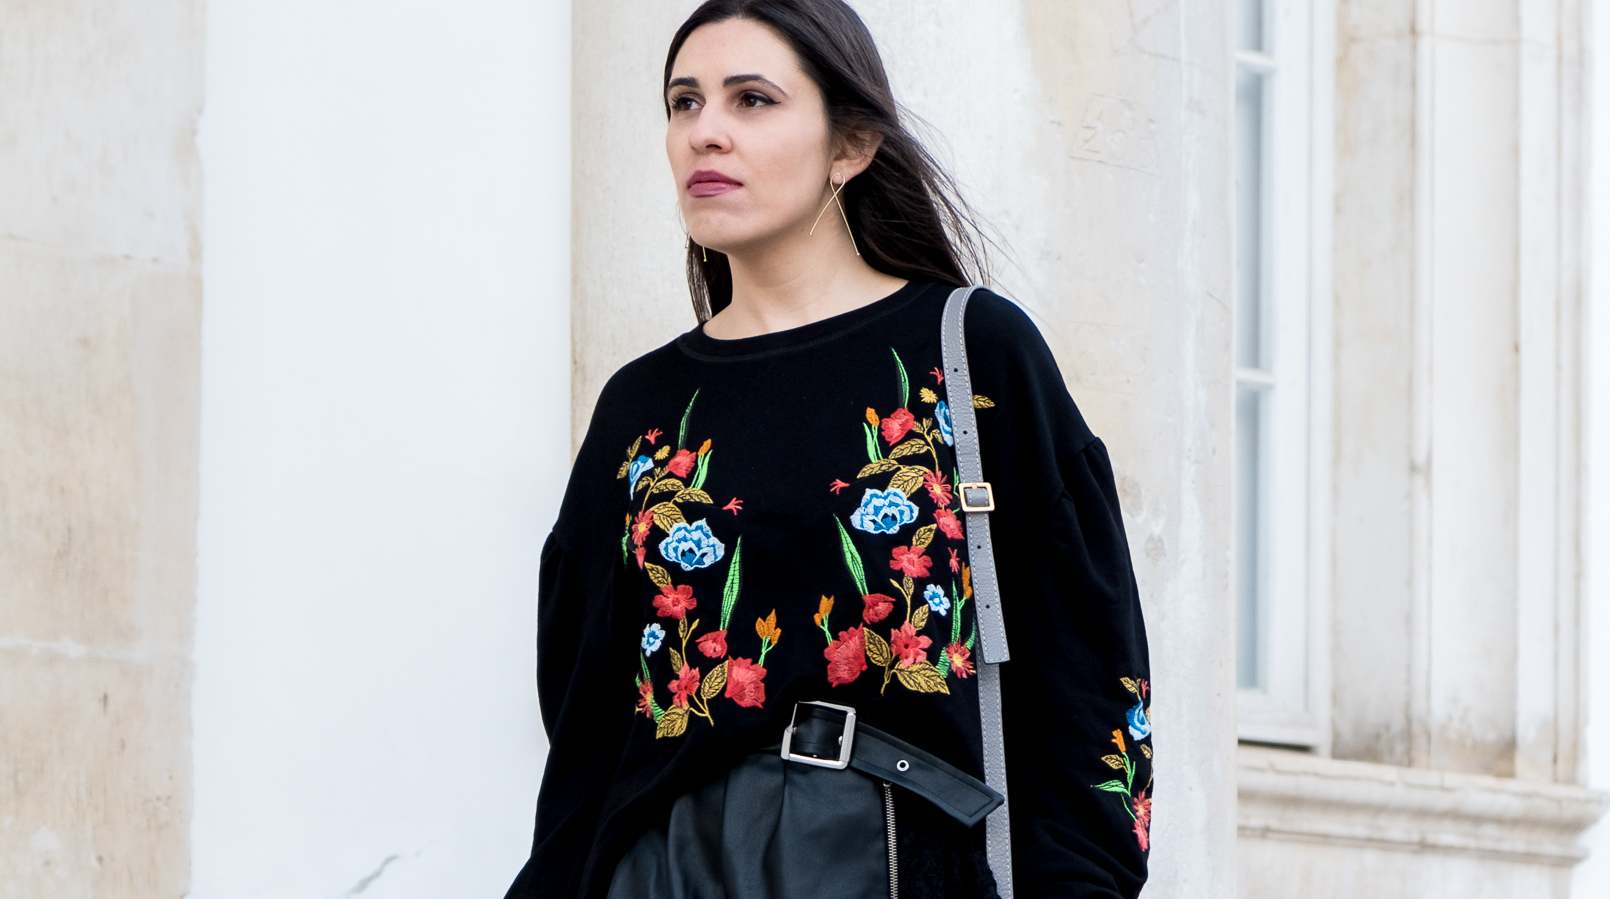 Le Fashionaire What we can learn from Ming Xi's fail on Victoria's Secret show black colorful flowers embroidered zara jumper fake leather black lace belt skirt zara chloe mini marcie grey leather bag gold hm earrings 3992F EN